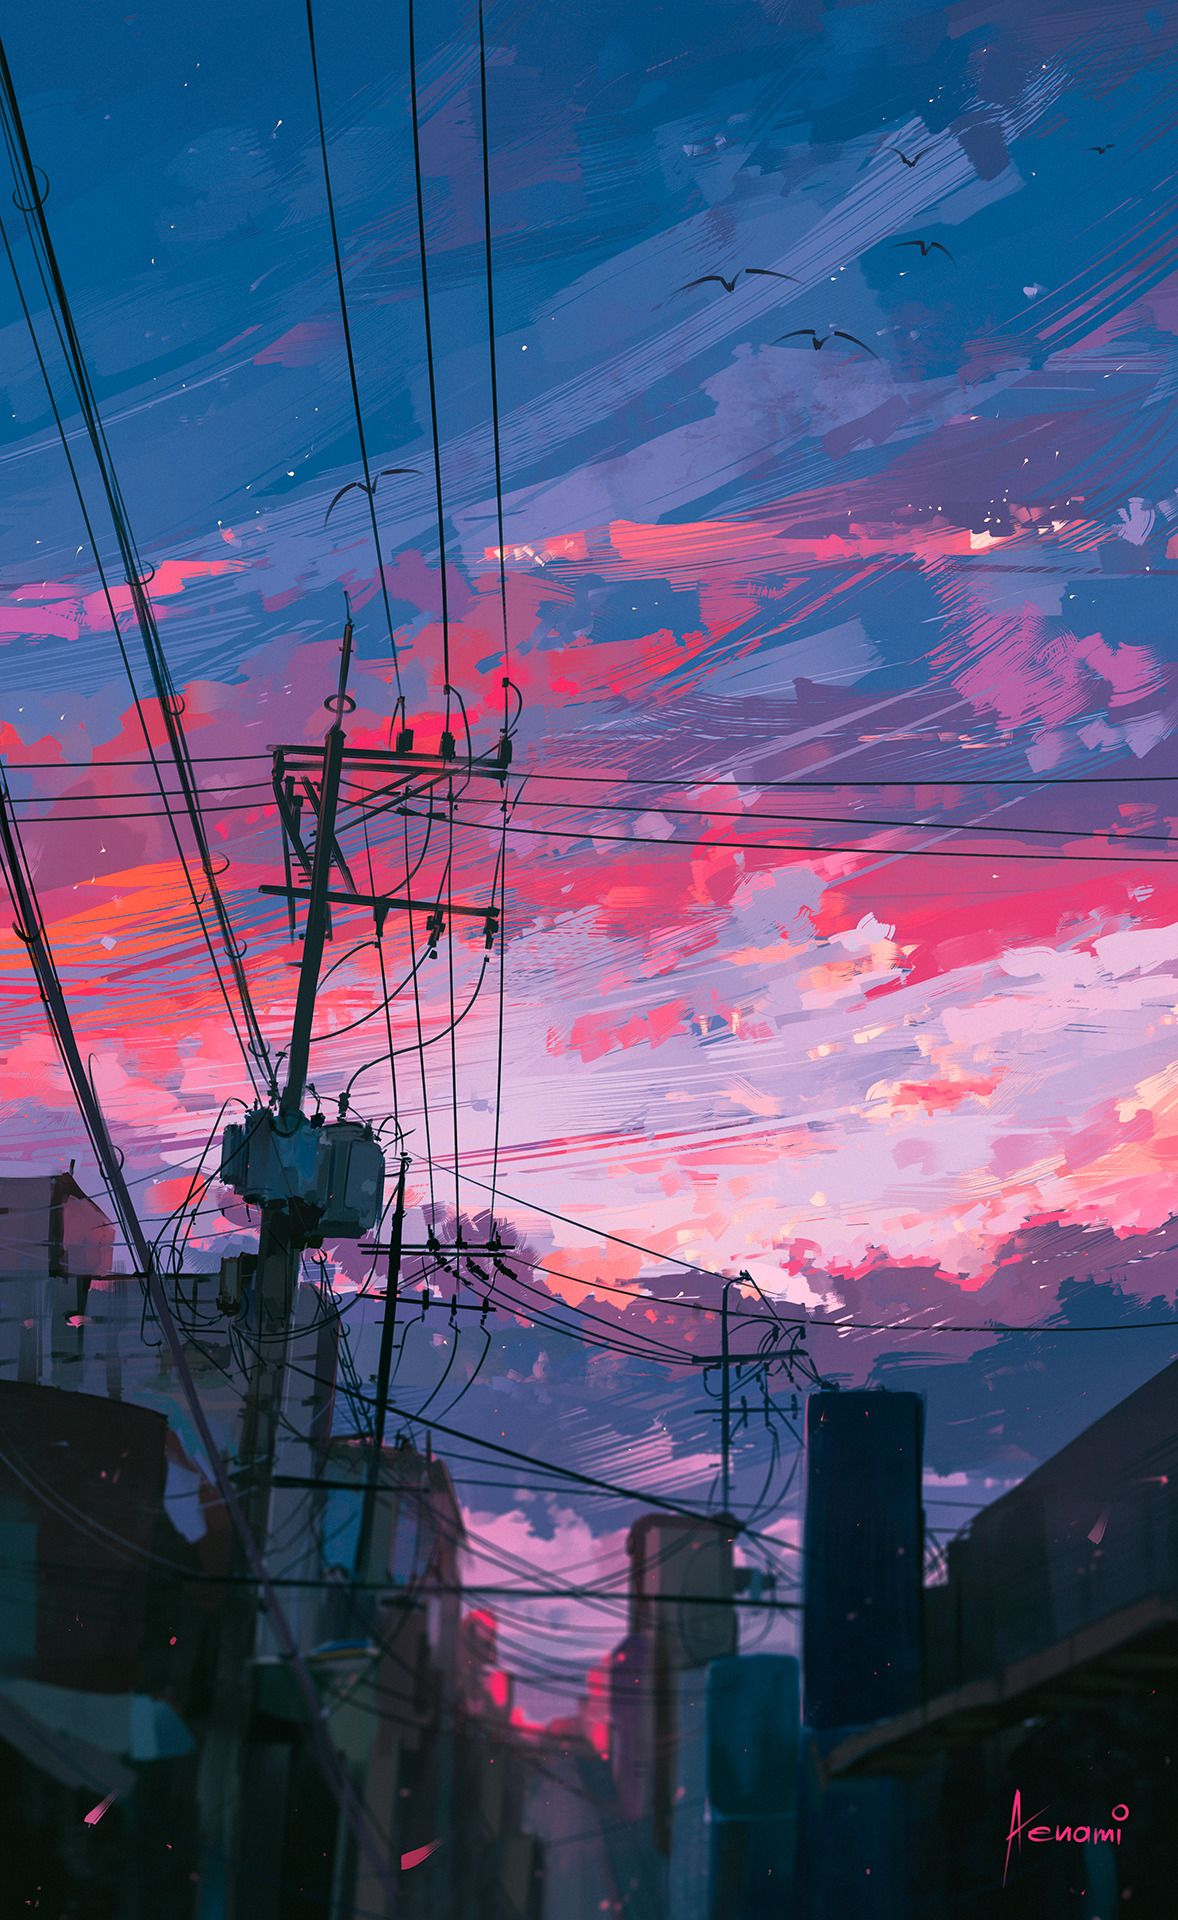 Post Anything From Anywhere Customize Everything And Find And Follow What You Love Create Your Own Art Wallpaper Anime Scenery Digital Painting